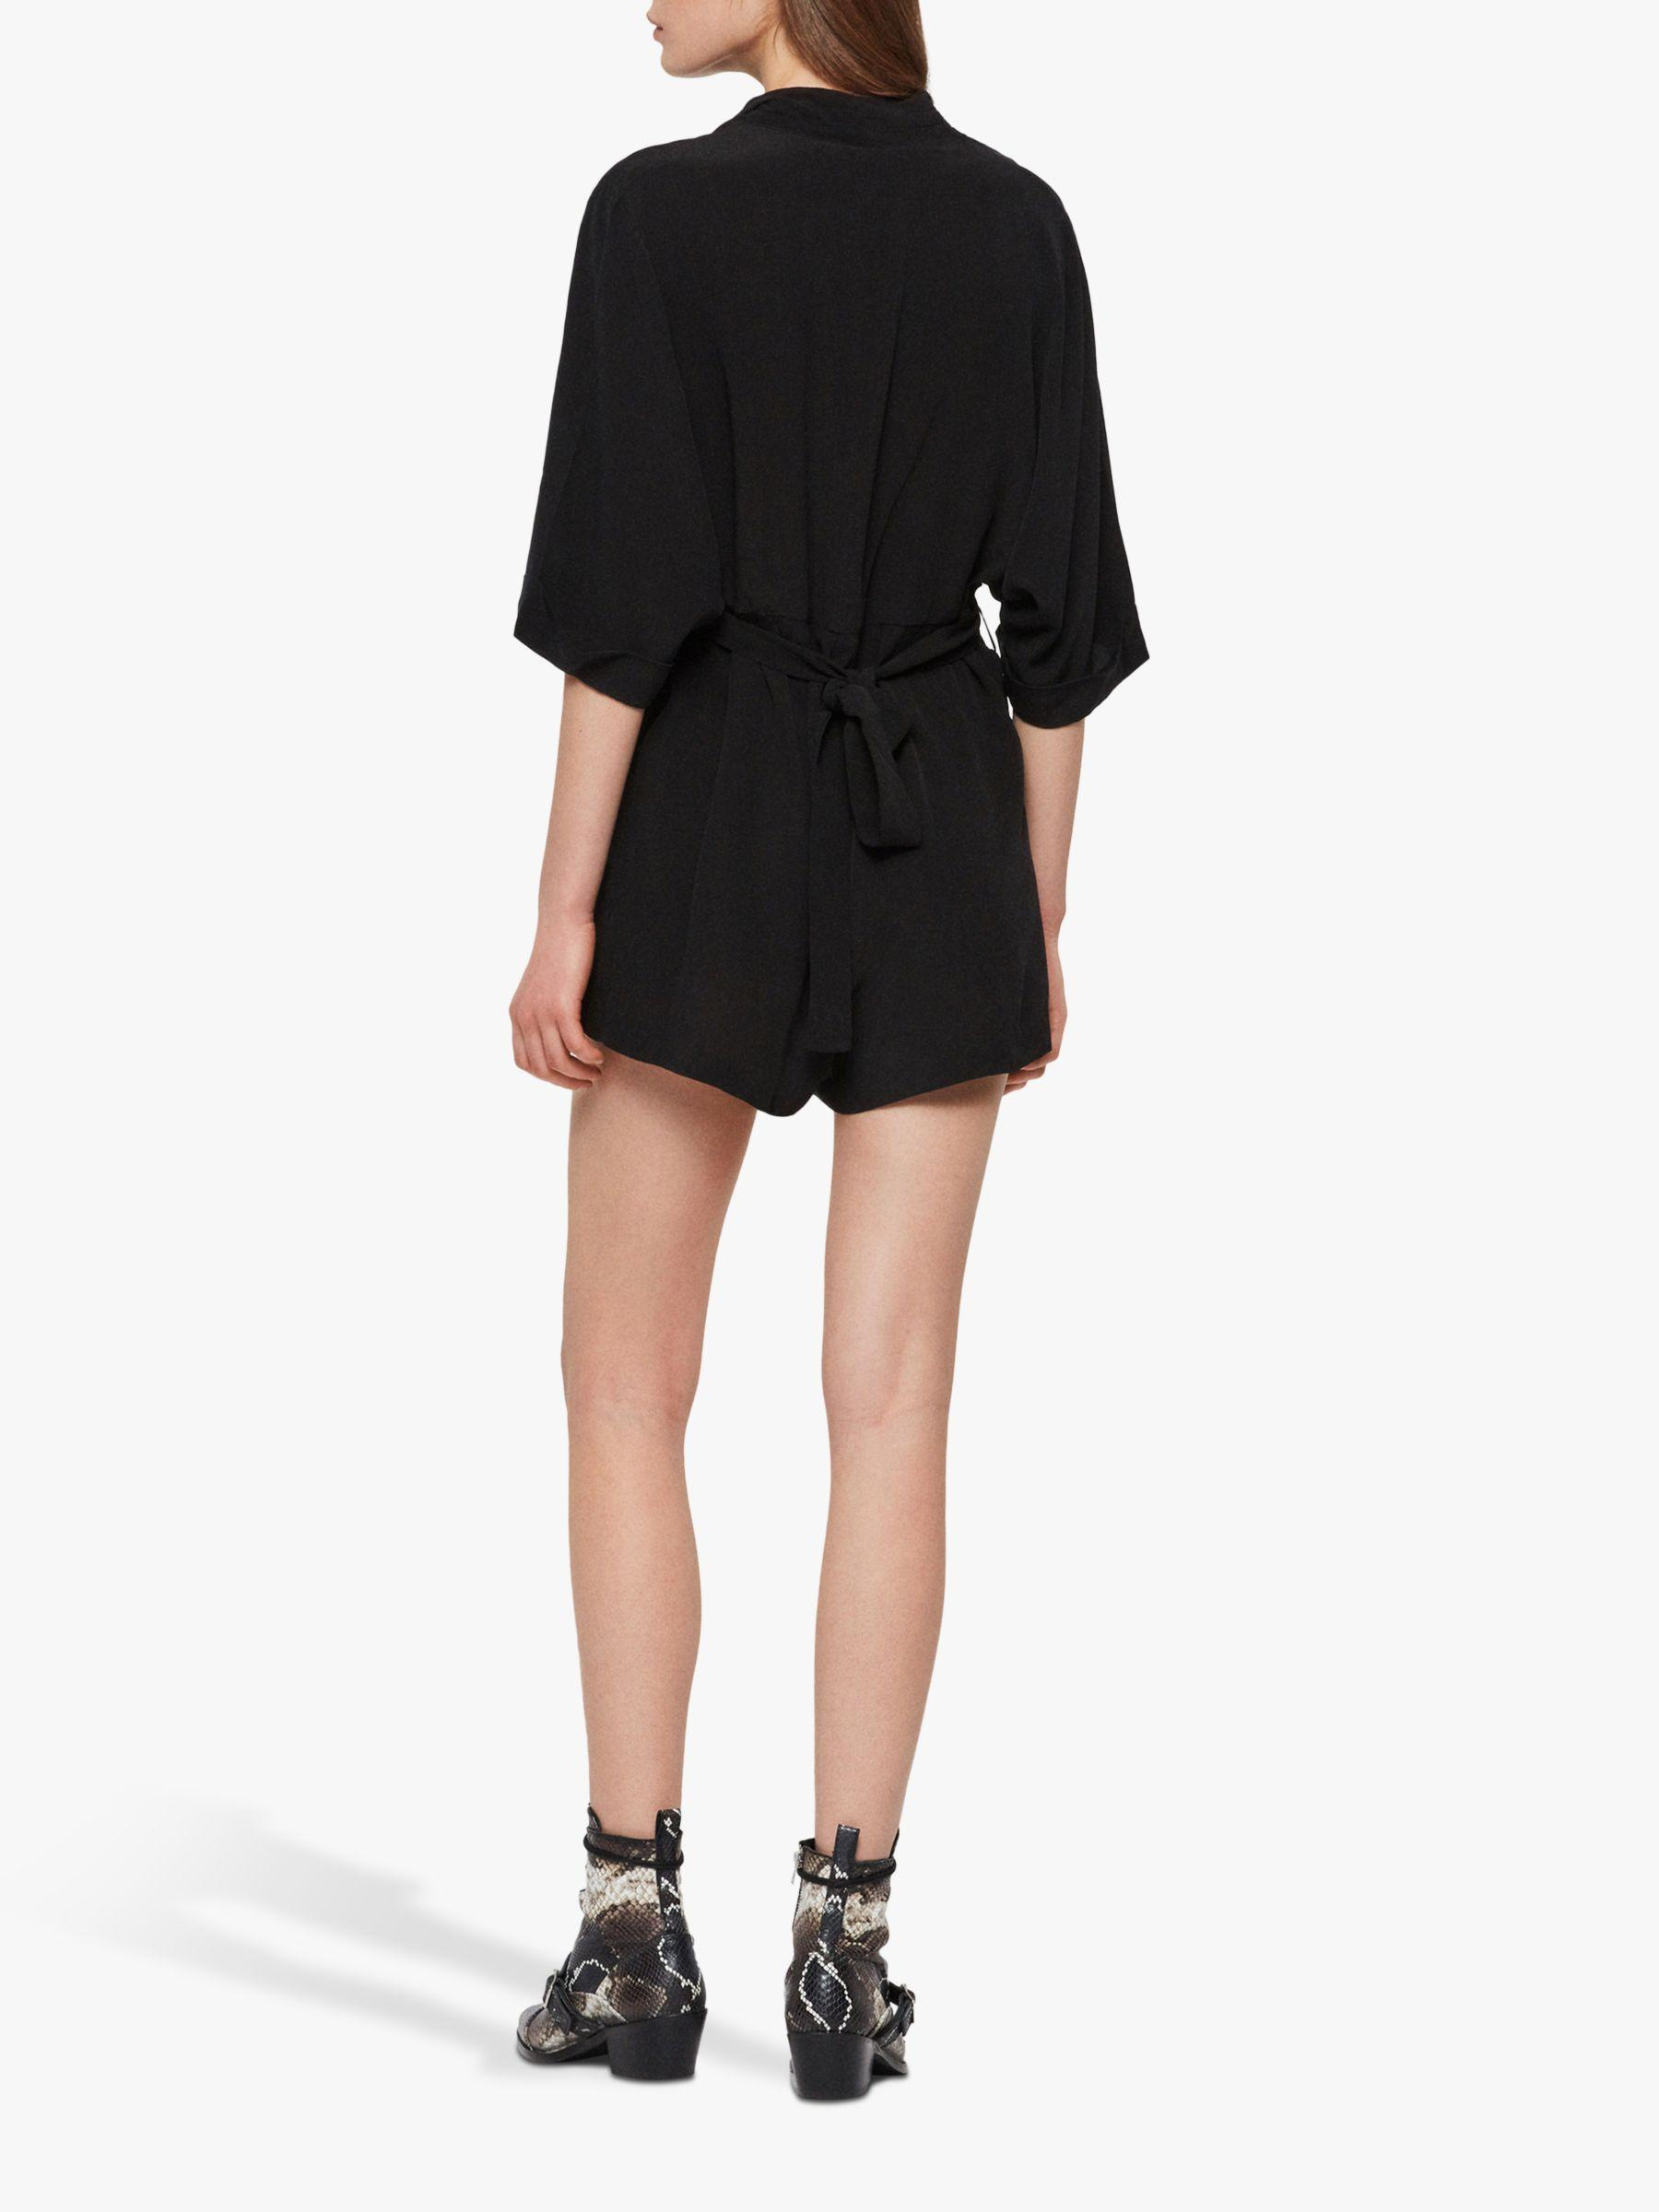 dd042dcaadb AllSaints Laurel Playsuit in Black - Lyst